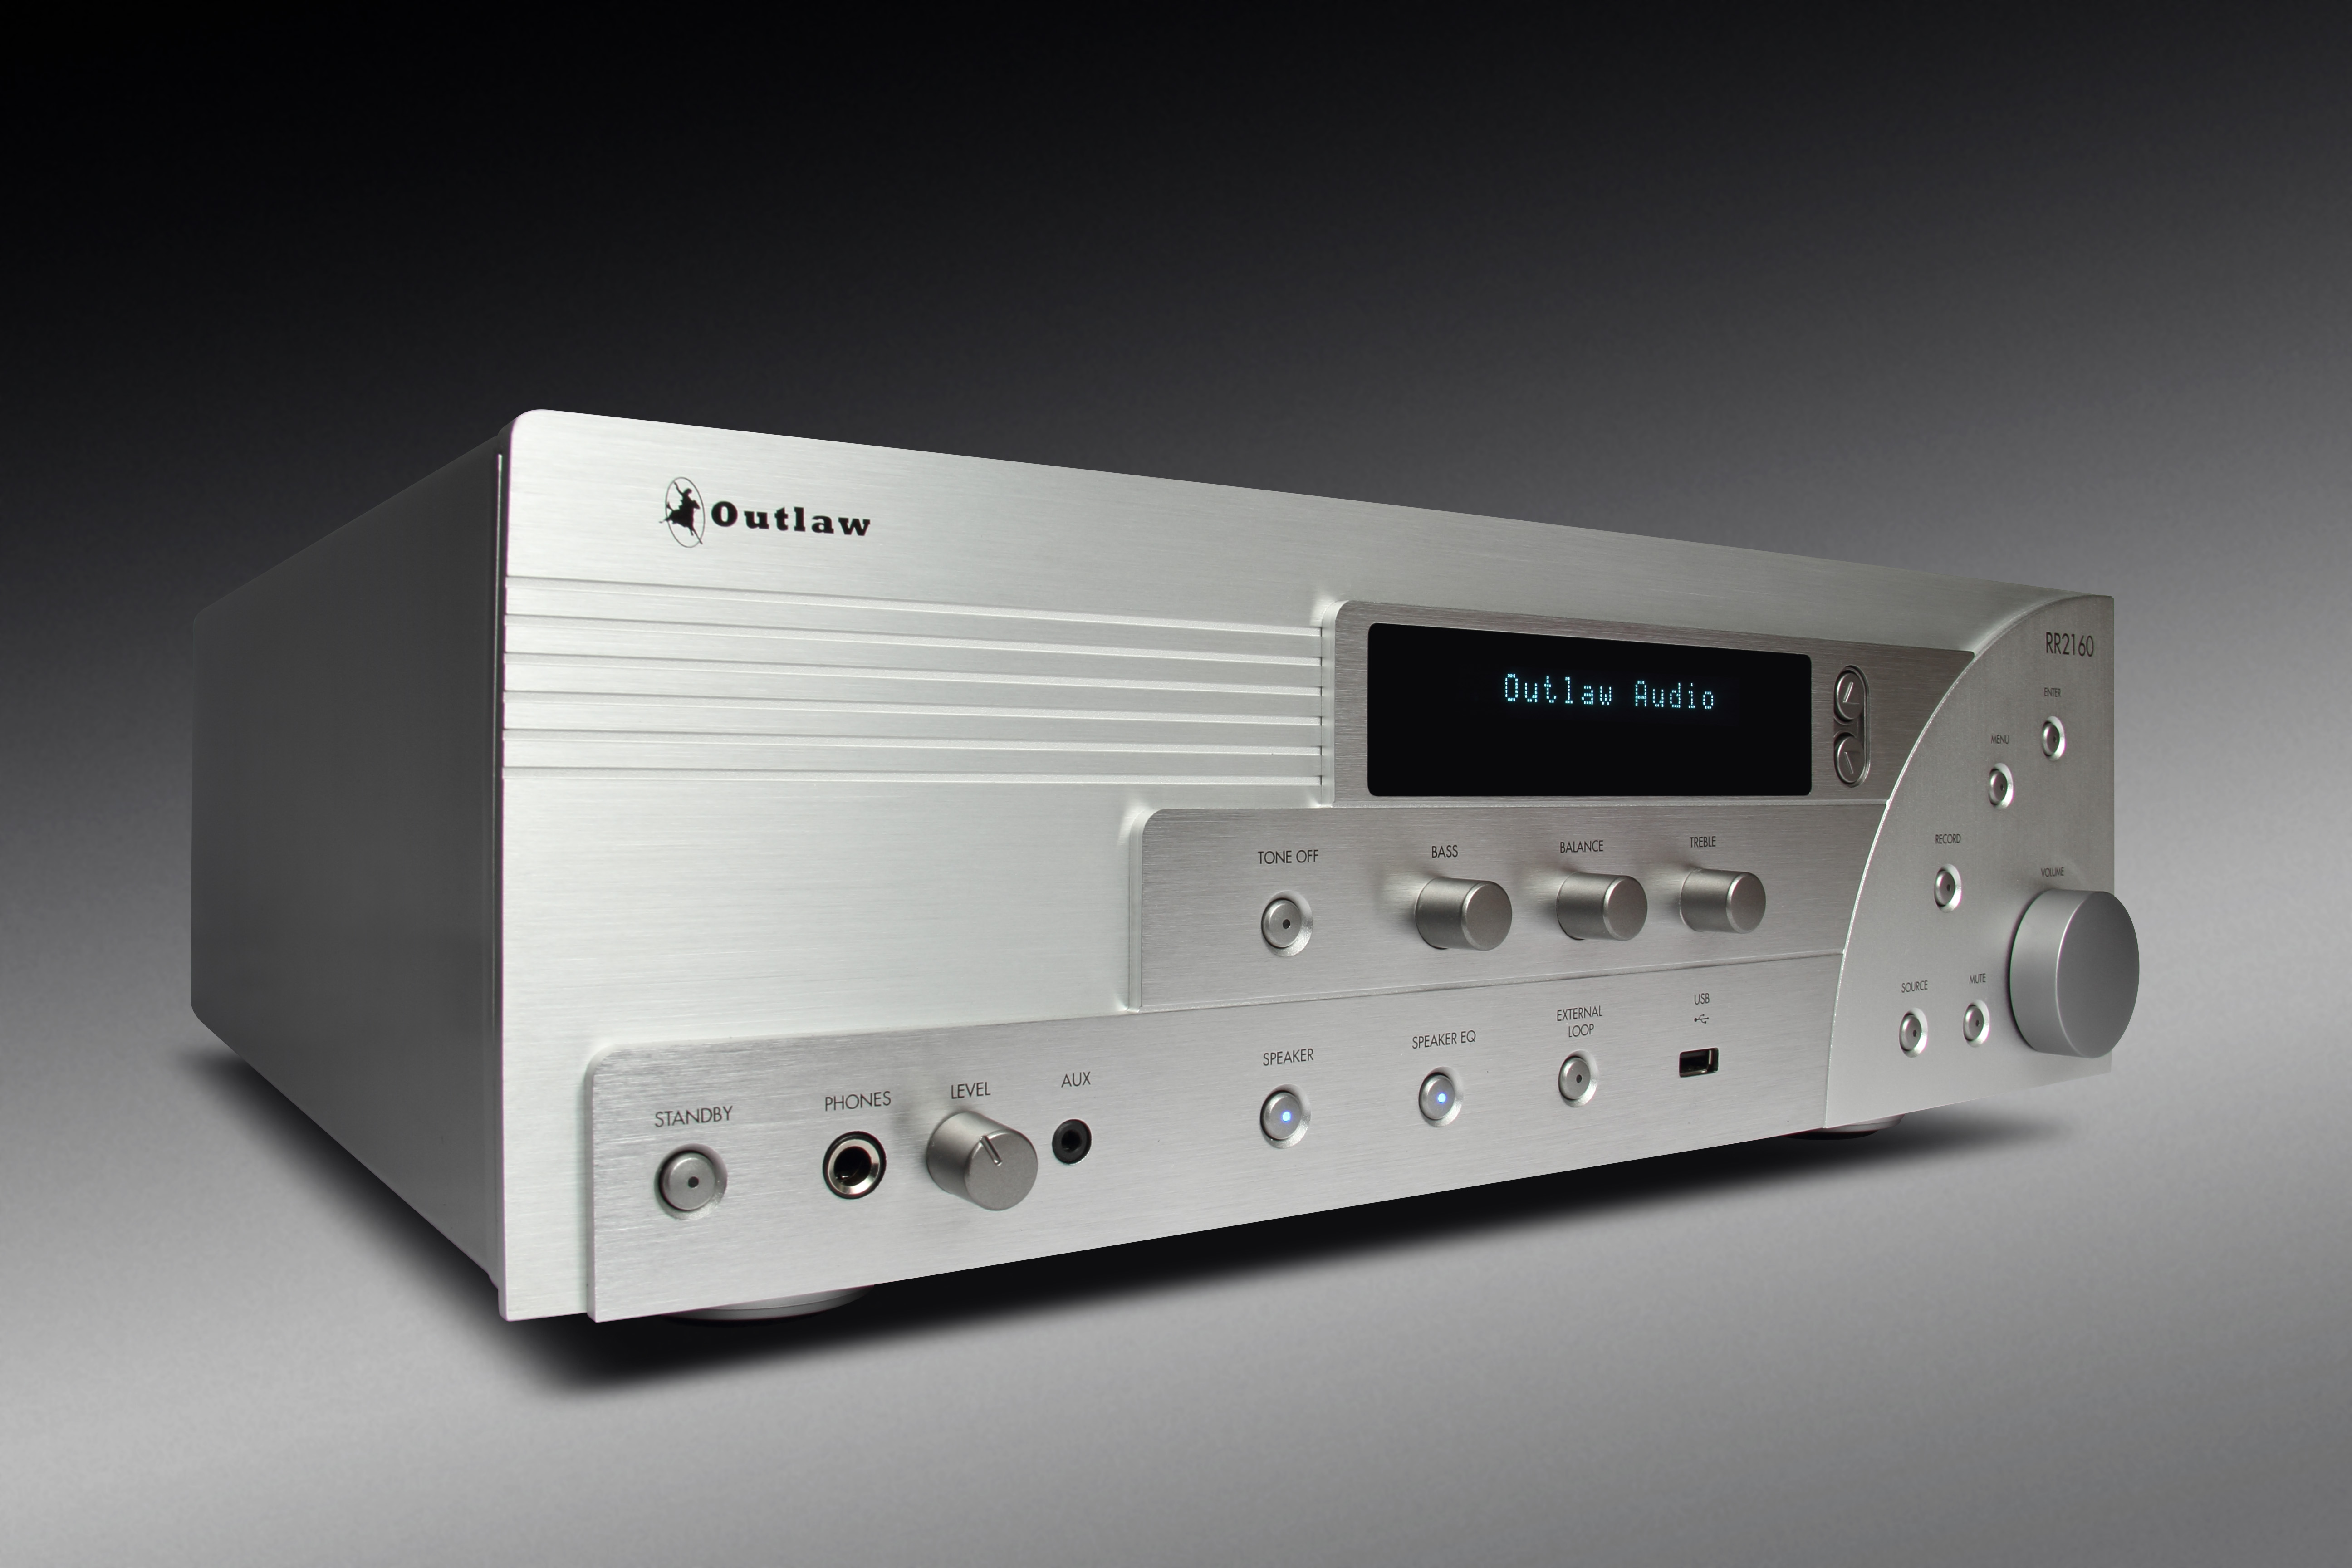 Rr2160 Stereo Receiver Tone Control Include Subwoofer Out The Outlaw Audio Rr 2160 Flat Sounds Better Than Any Or Amplifier Ive Heard For Its 799 Asking Price